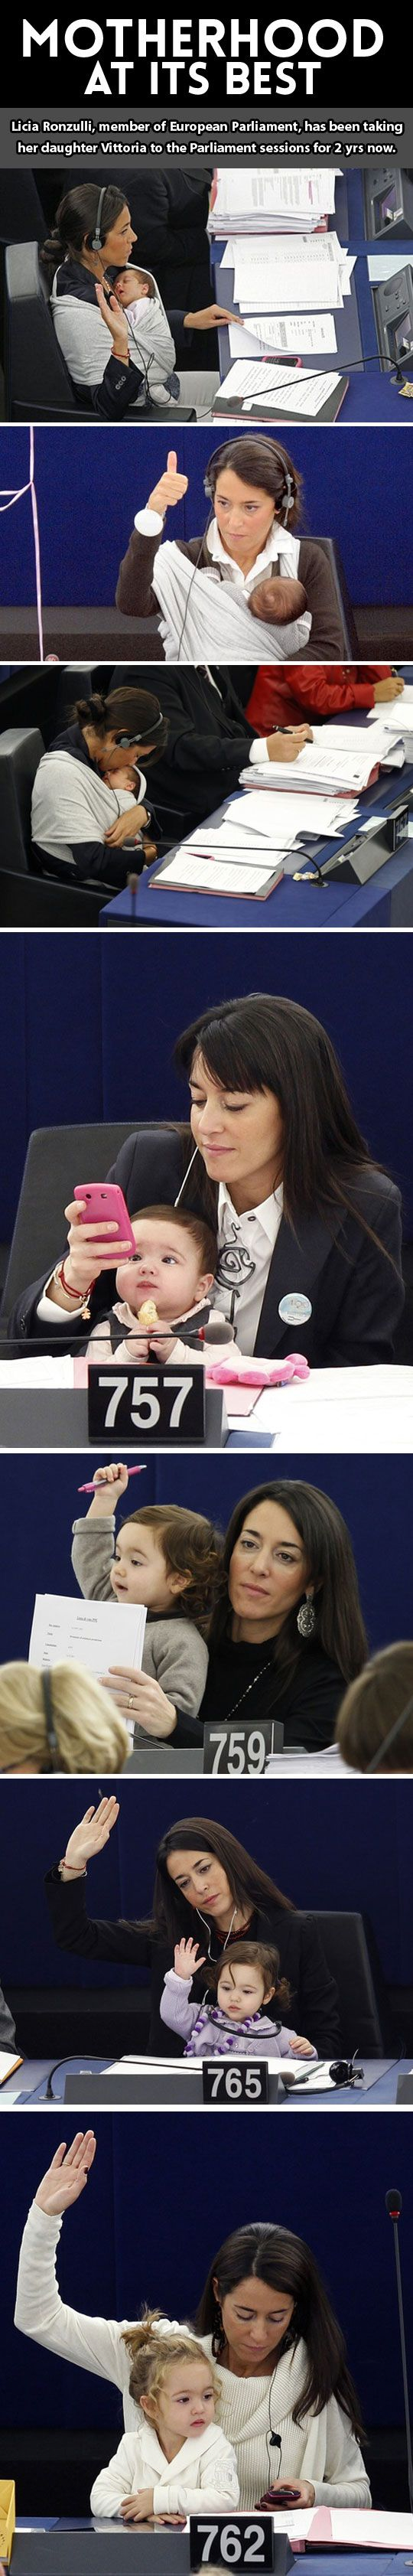 Such a different culture. LOVE this! Licia Ronzulli, a member of European Parliament, has been taking her daughter to work for two years now. #workingmom